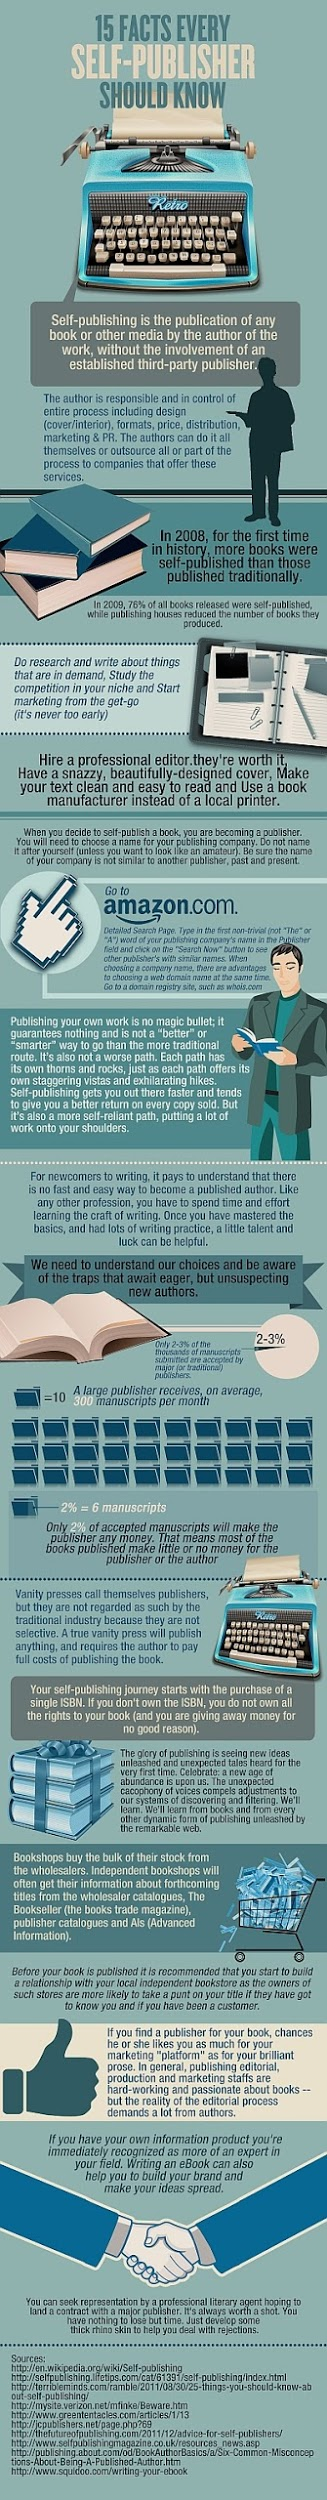 Self-publishing01 infograph